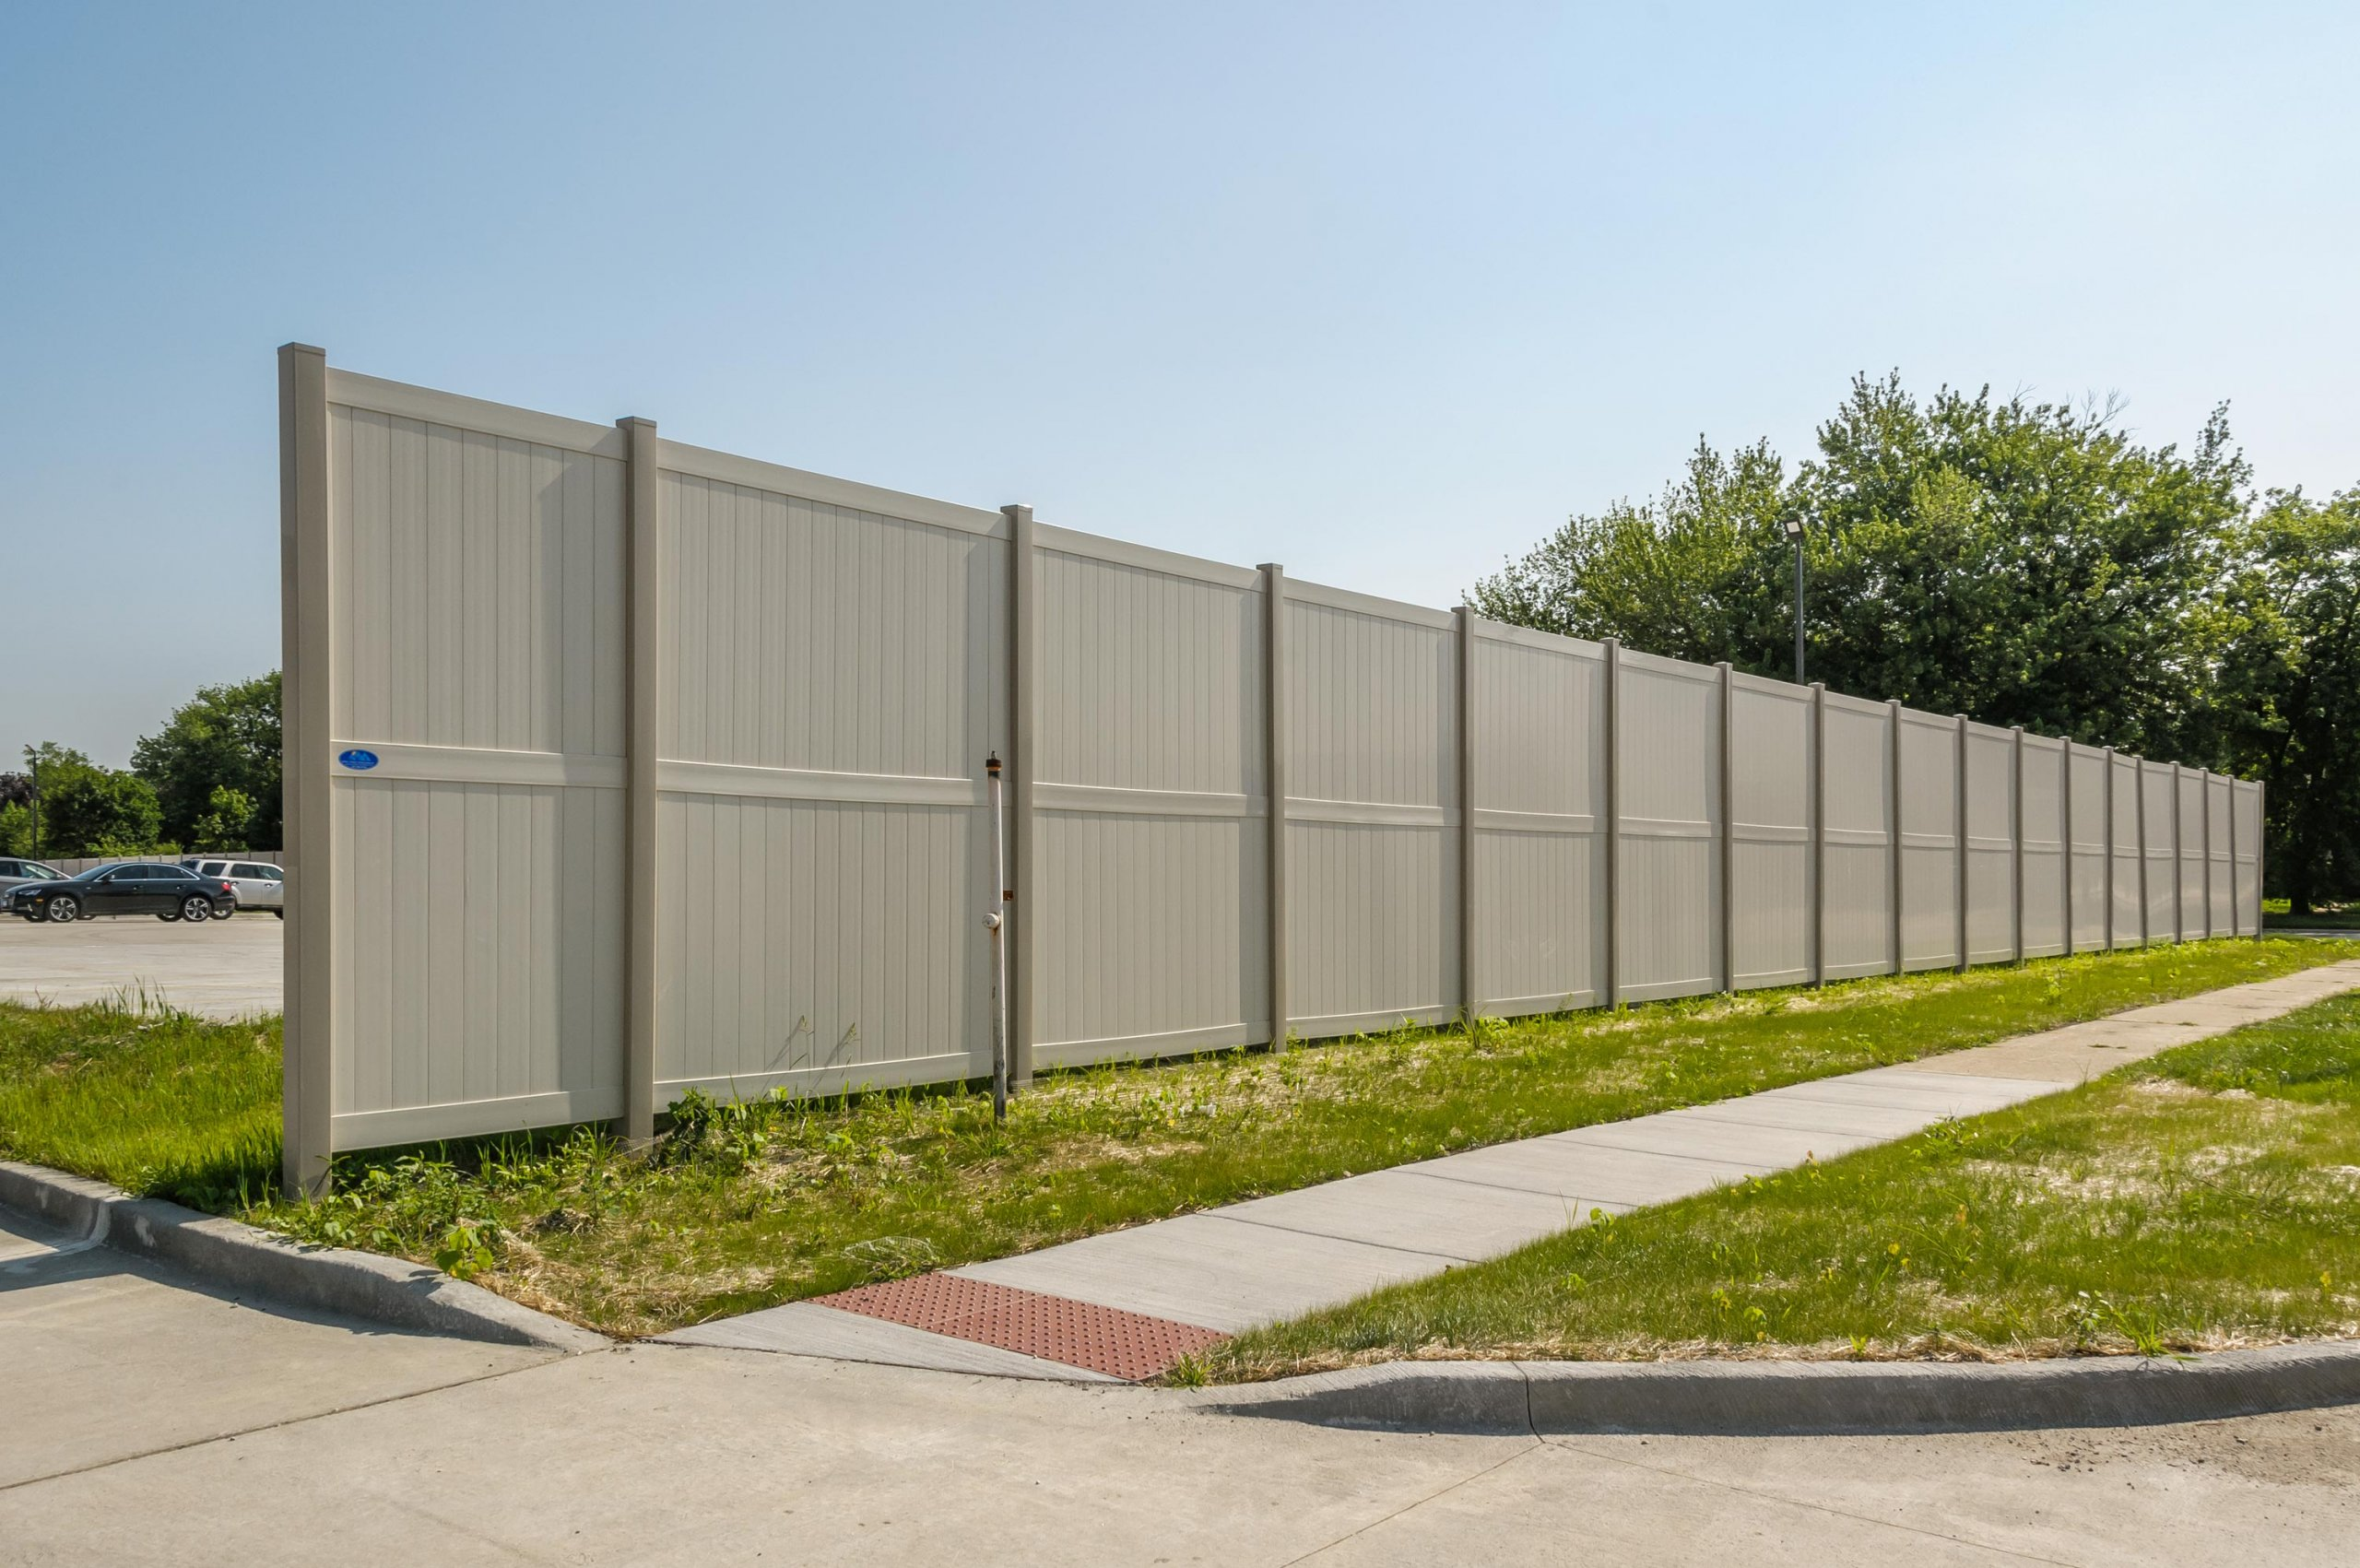 10' Rainer vinyl fence photo fence-6 installed around warehouse in River Grove, Illinois